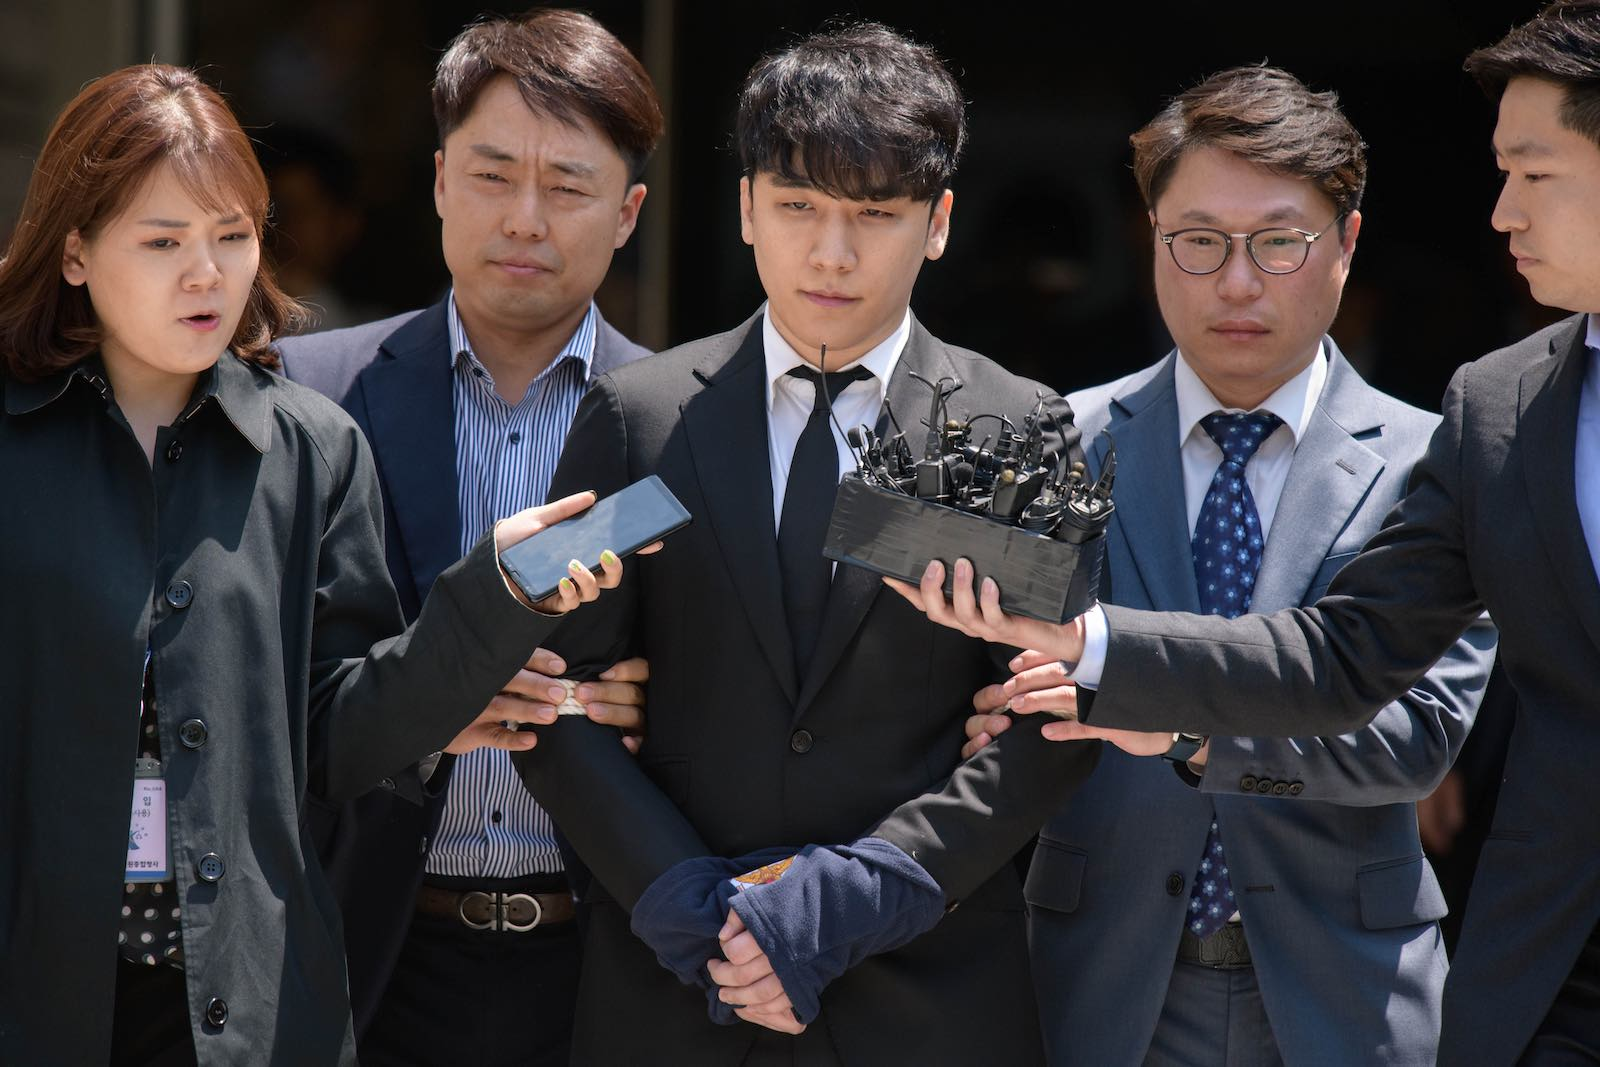 Former Big Bang boyband member Seungri, centre, real name Lee Seung-hyun, leaves the High Court in Seoul in May (Photo: Ed Jones via Getty)